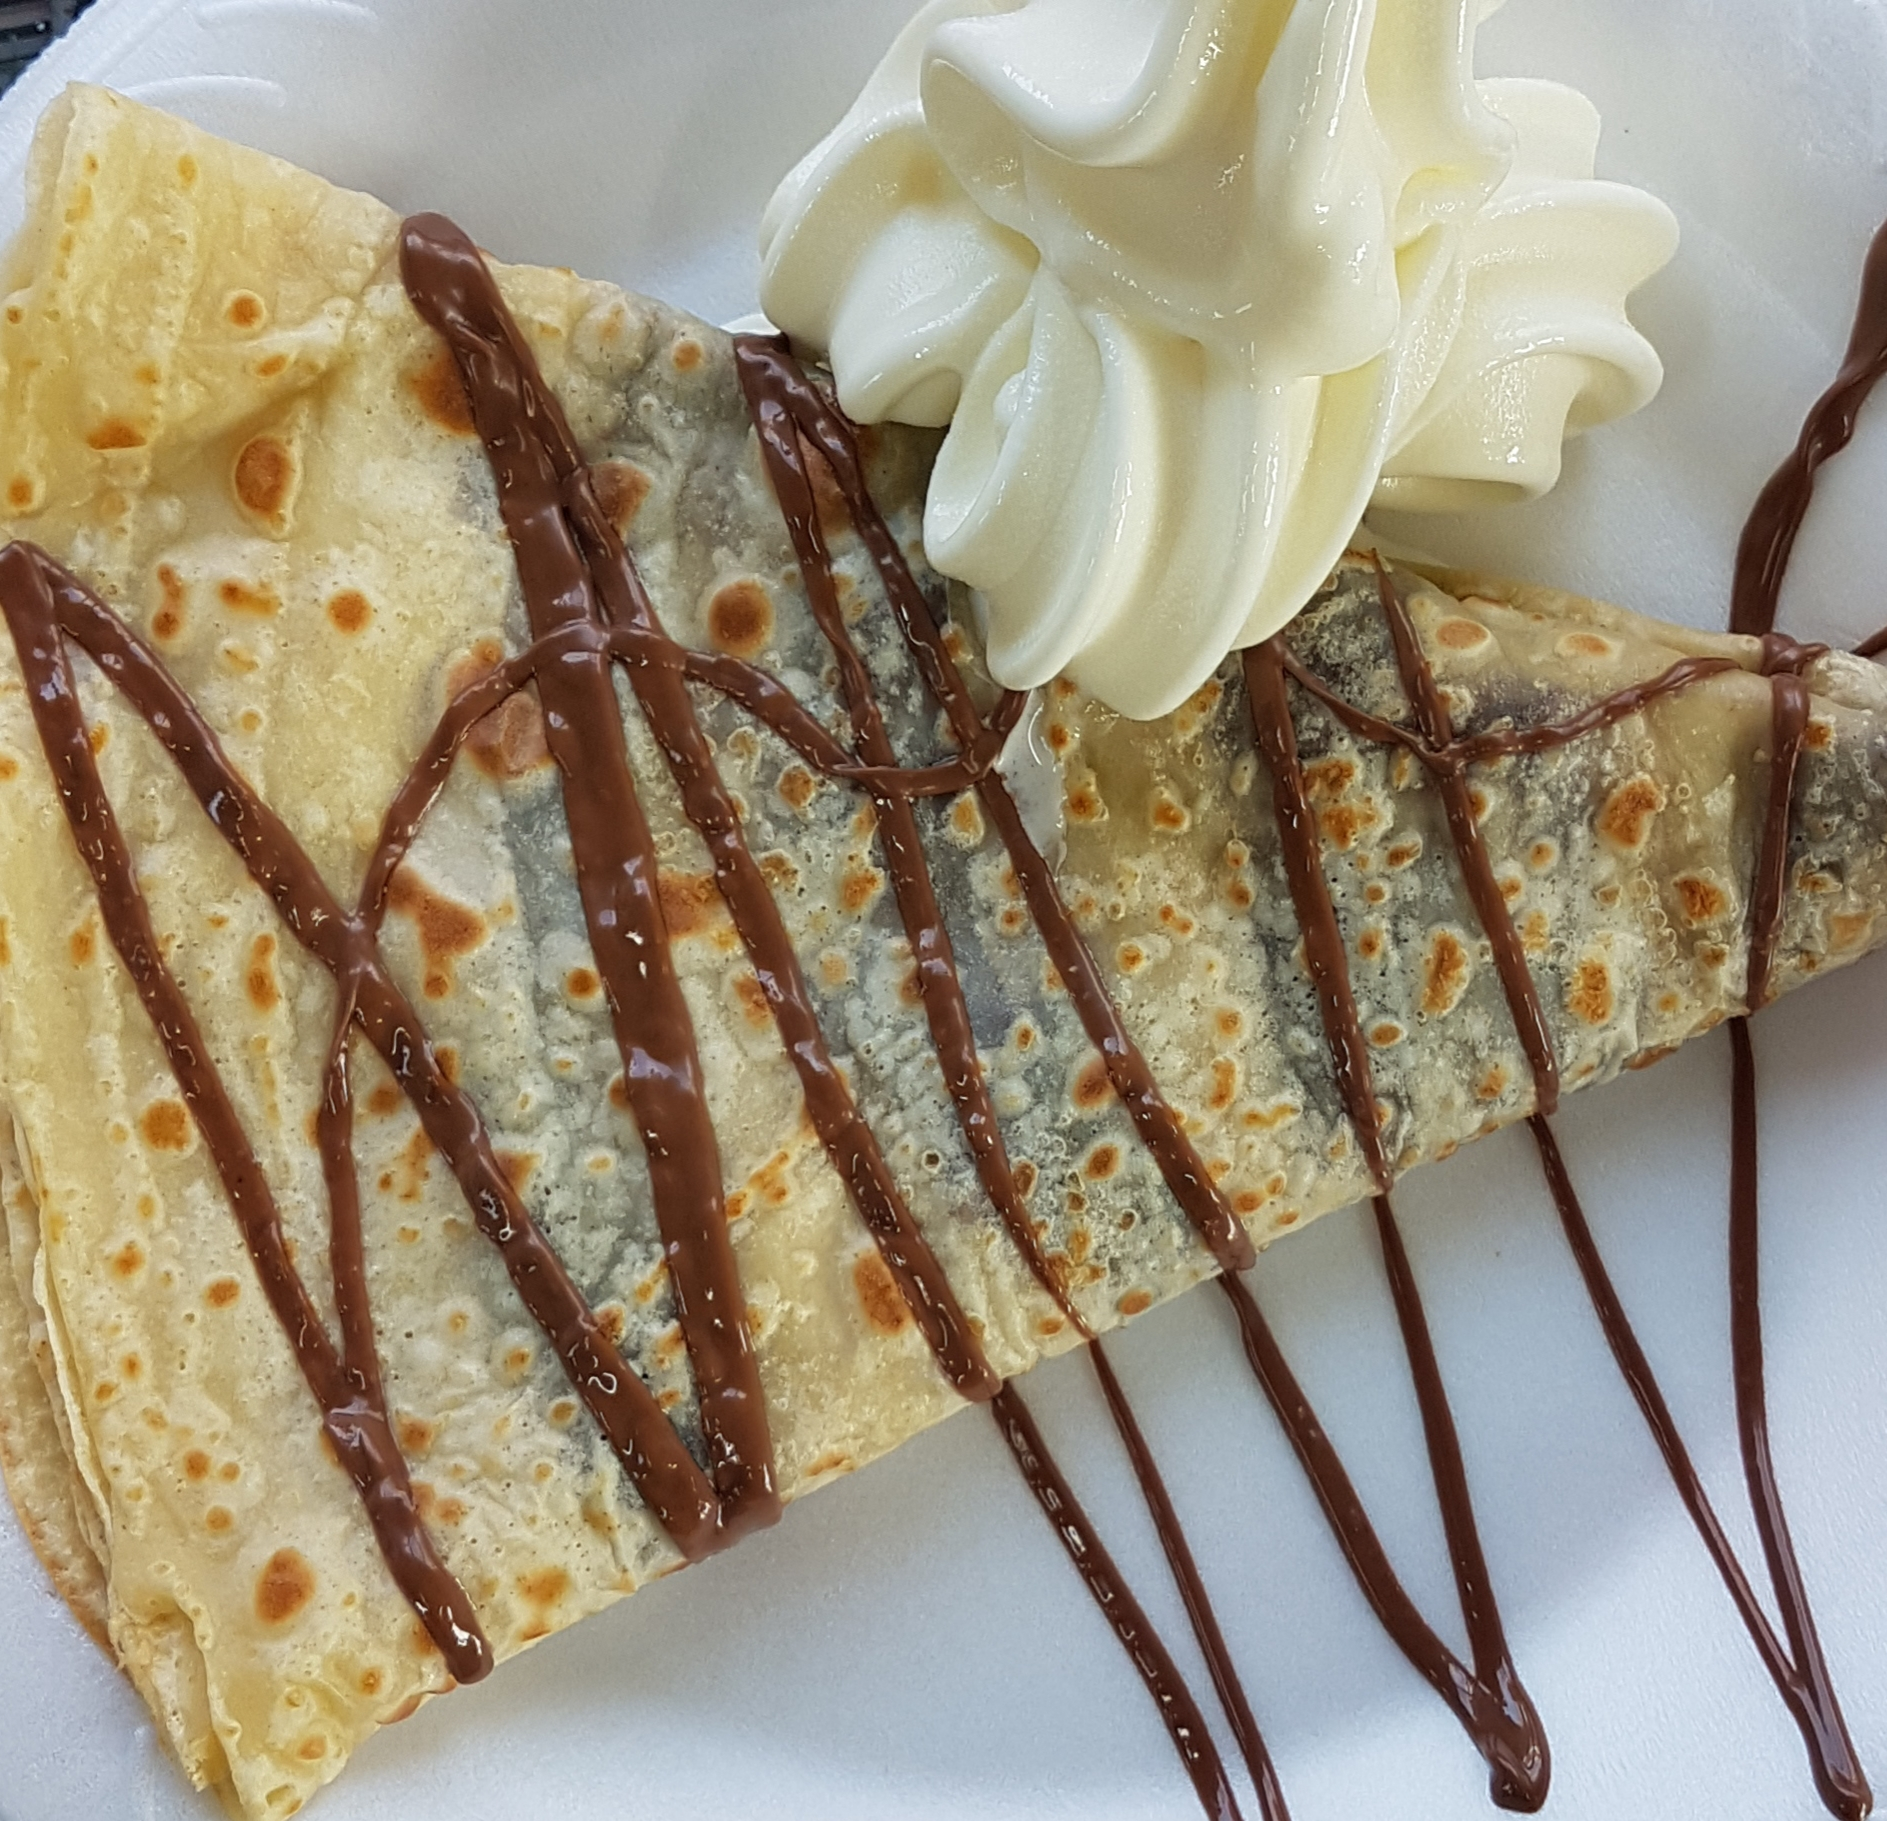 Freshly cooked crepes